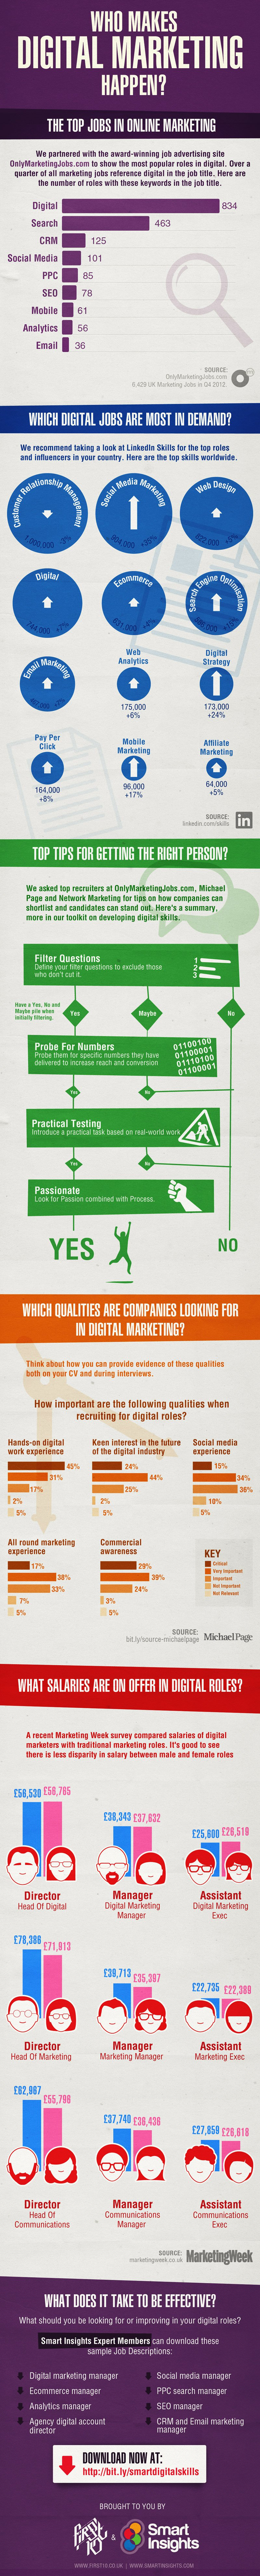 How To Get A Job In Online Marketing In 2015